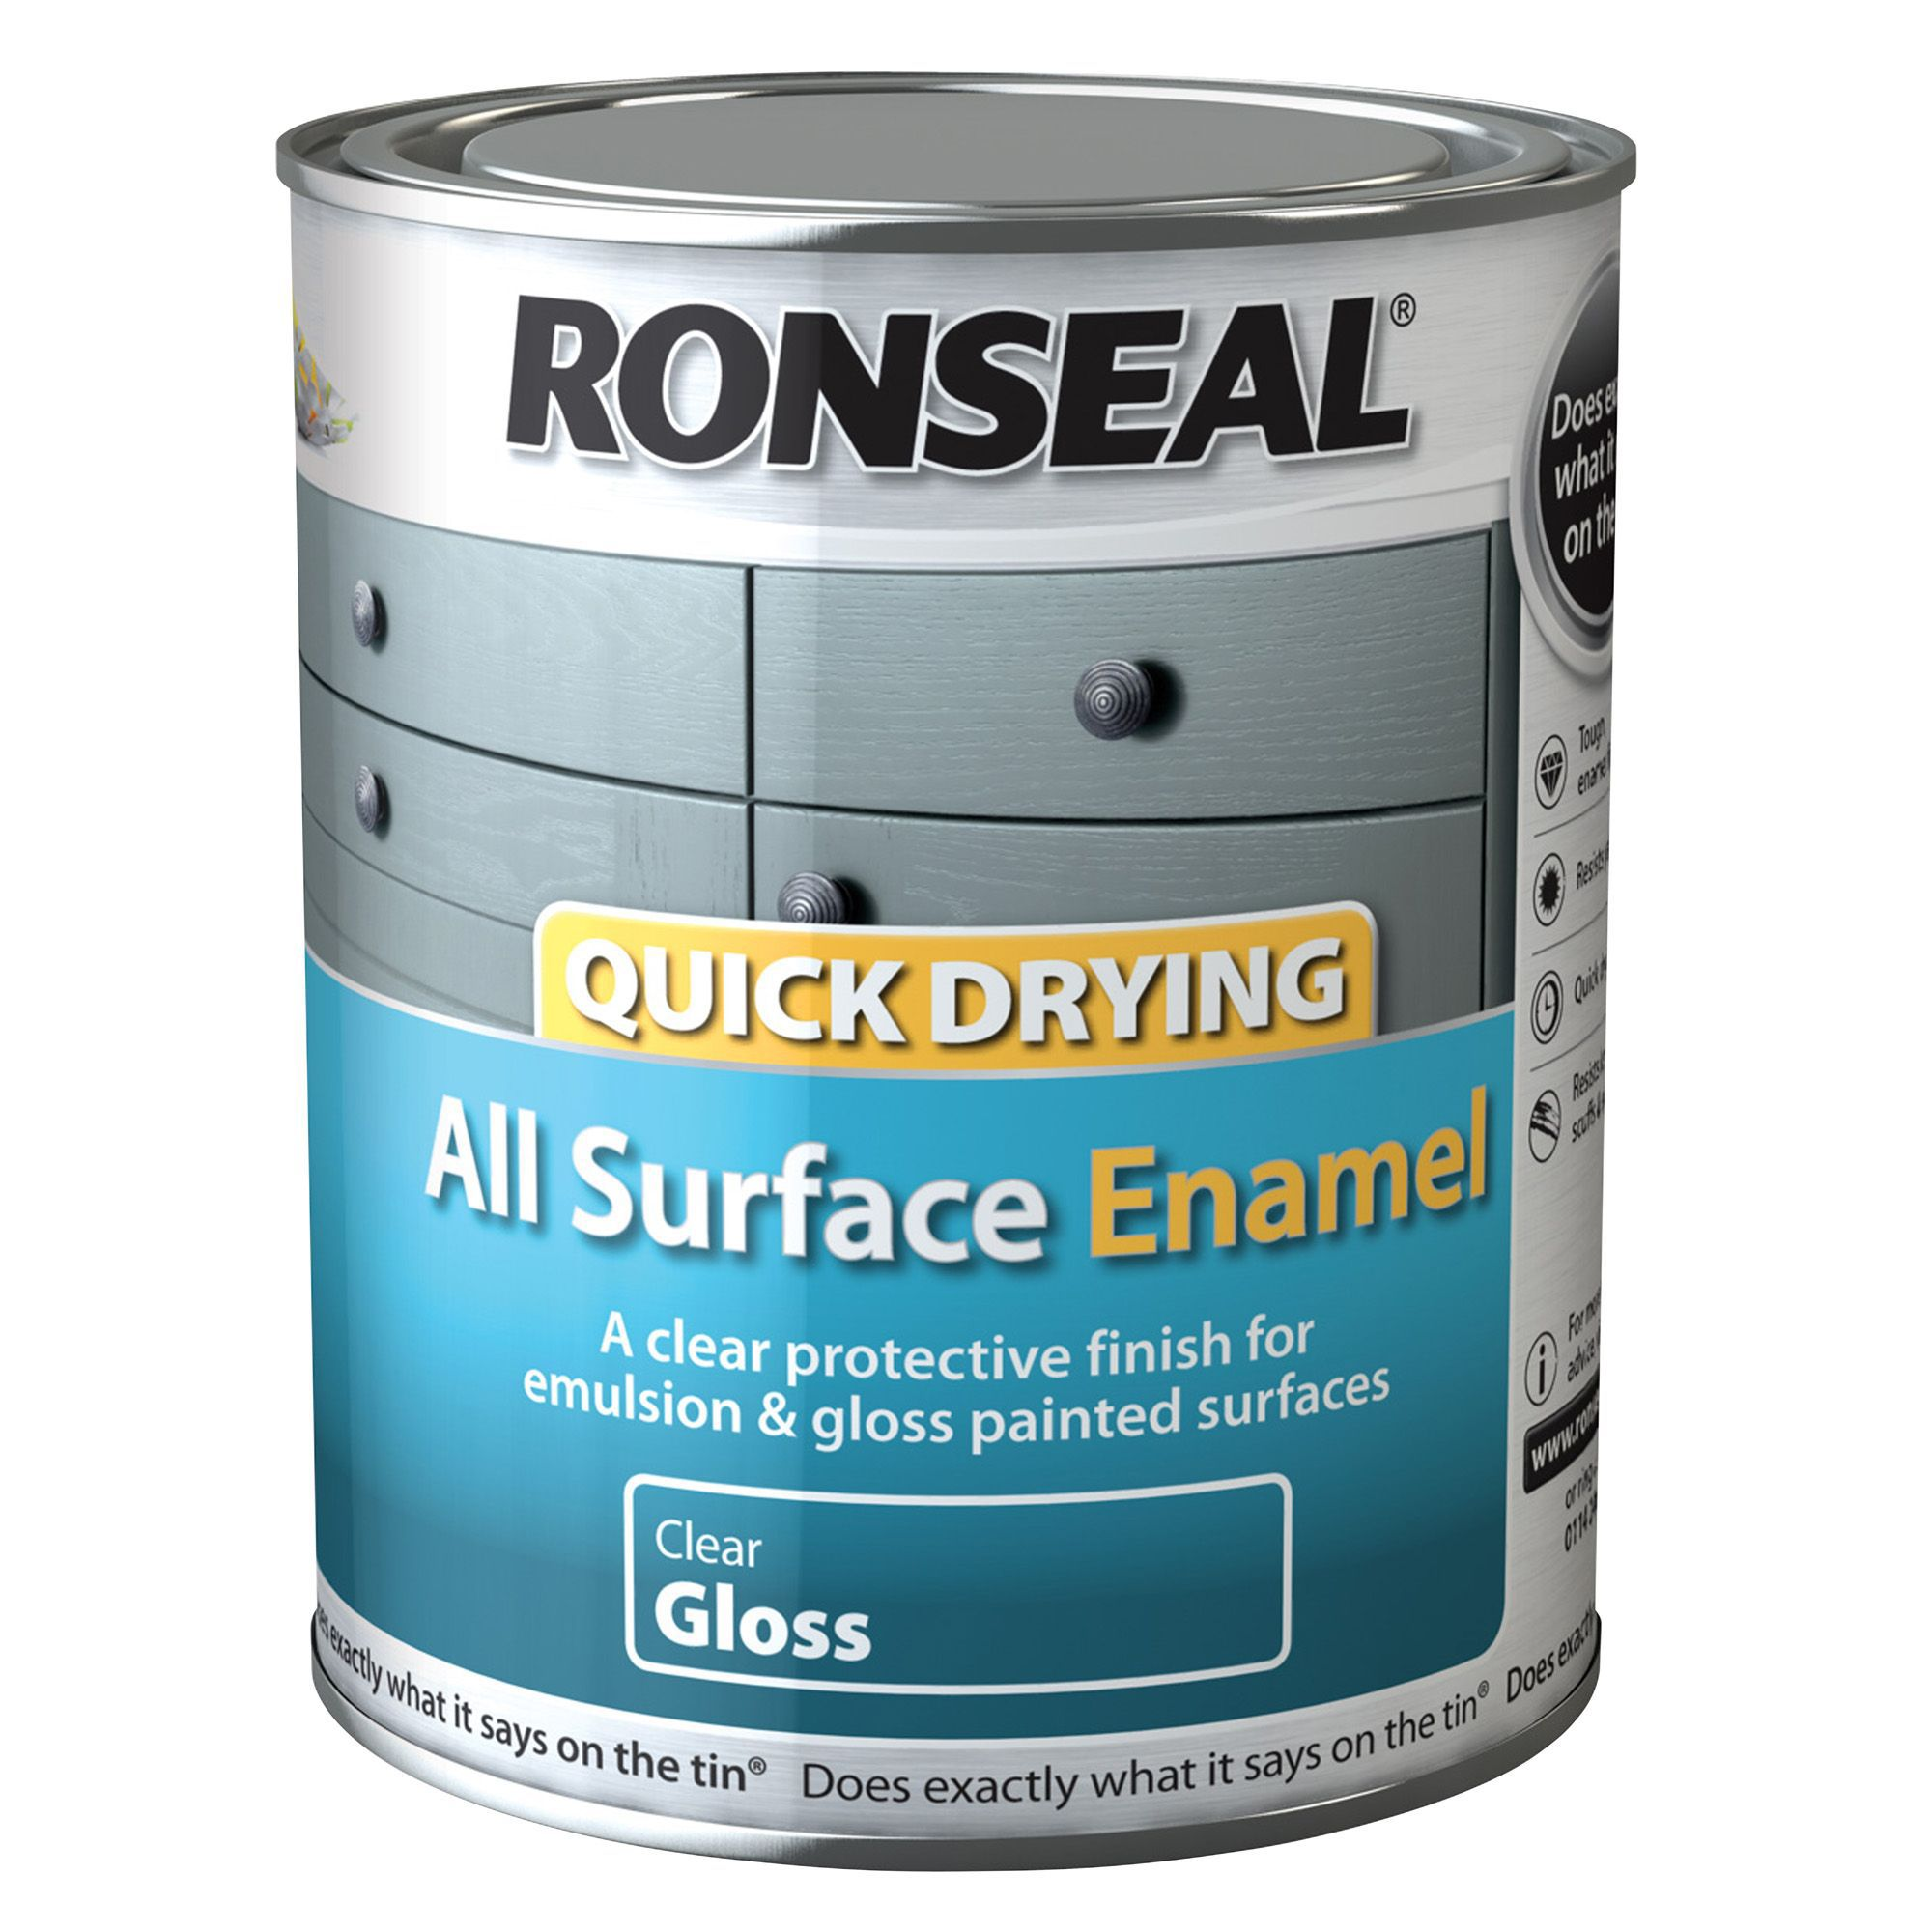 Ronseal Clear Gloss Enamel Paint 750 ml | Departments | DIY at B&Q